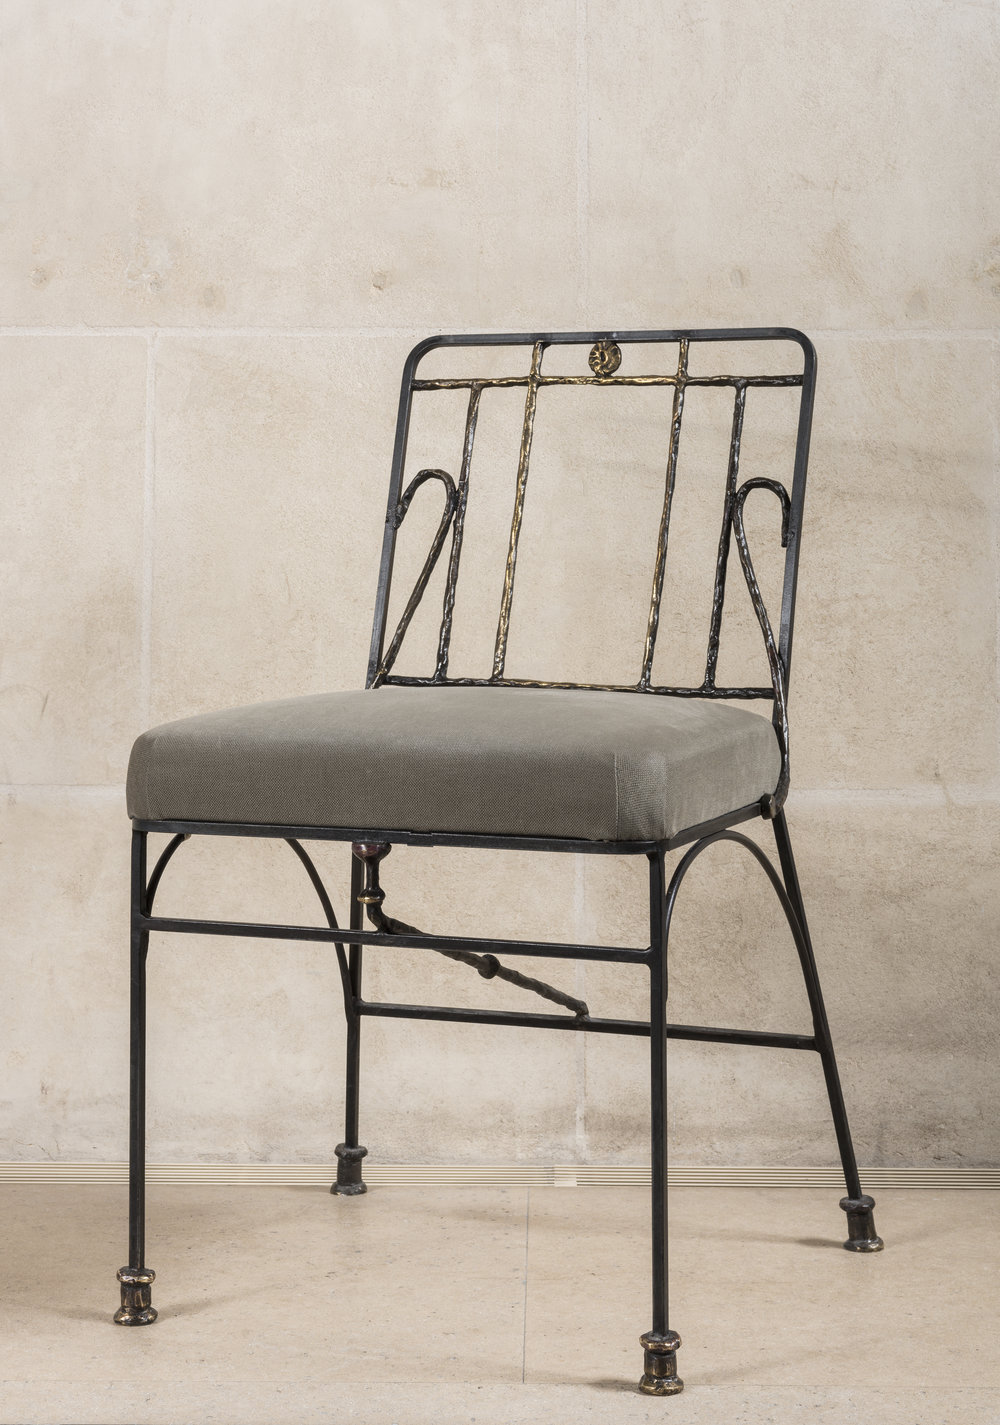 Diego Giacometti (1902-1985)  Chair [1983-1985] made after a model from 1955 and executed at Bronze Métier d'Art Foundry, Port-sur-Saône, on display at Musée national Picasso-Paris; bronze, 81.5 x 48 x 40 cm ©Philippe Fuzeau/ Musée national Picasso-Paris